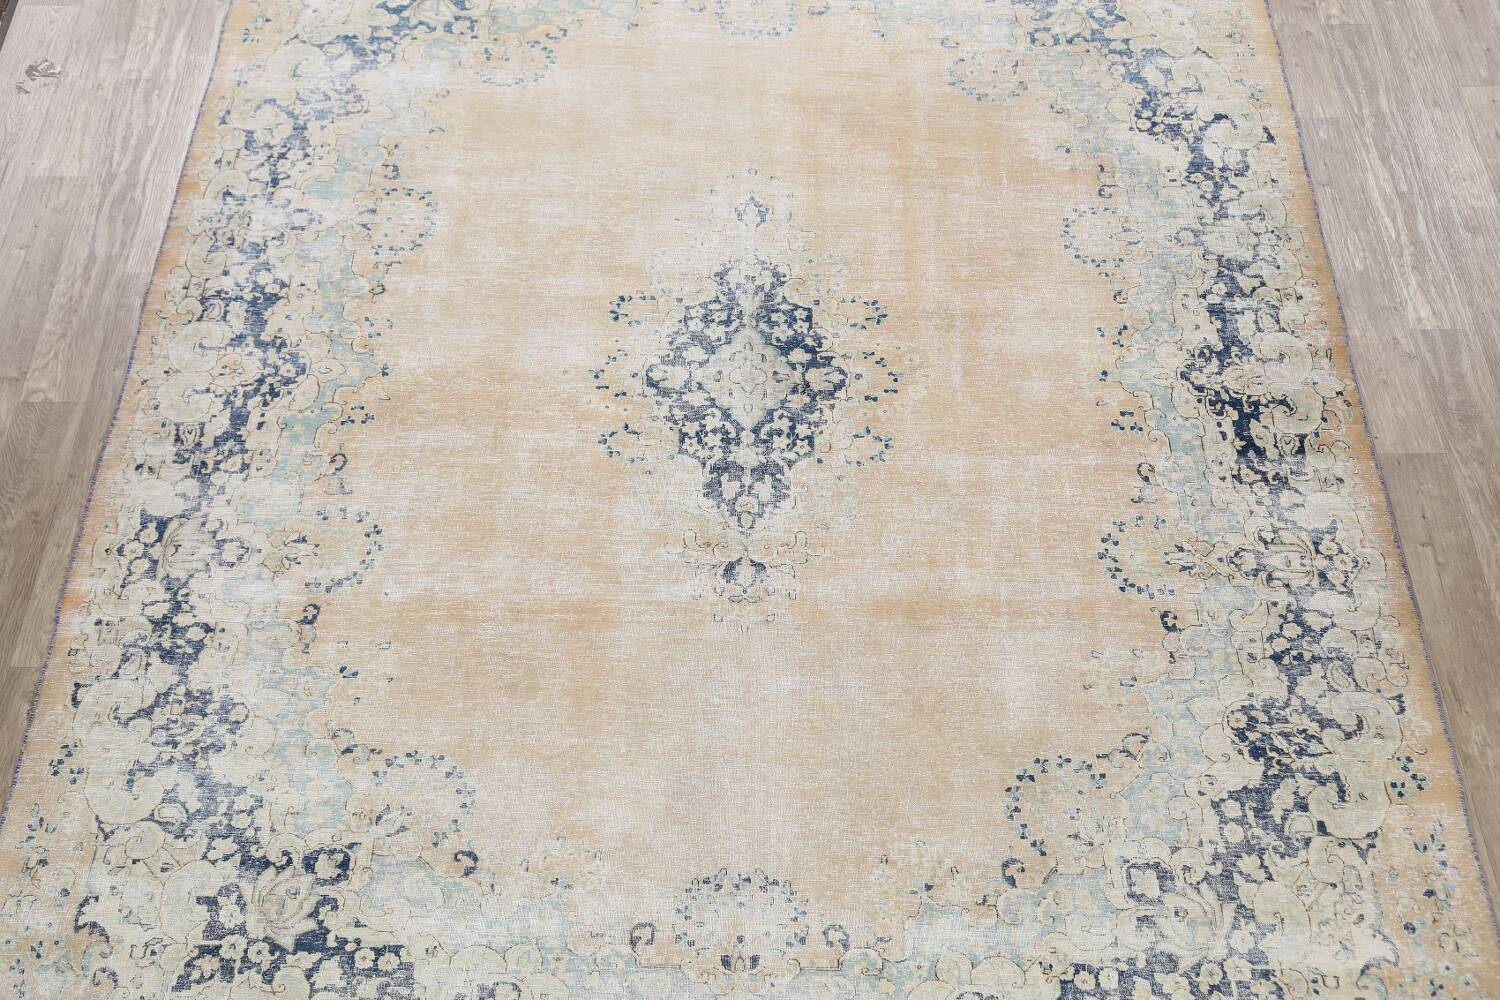 Antique Muted Floral Kerman Persian Area Rug 9x11 image 3